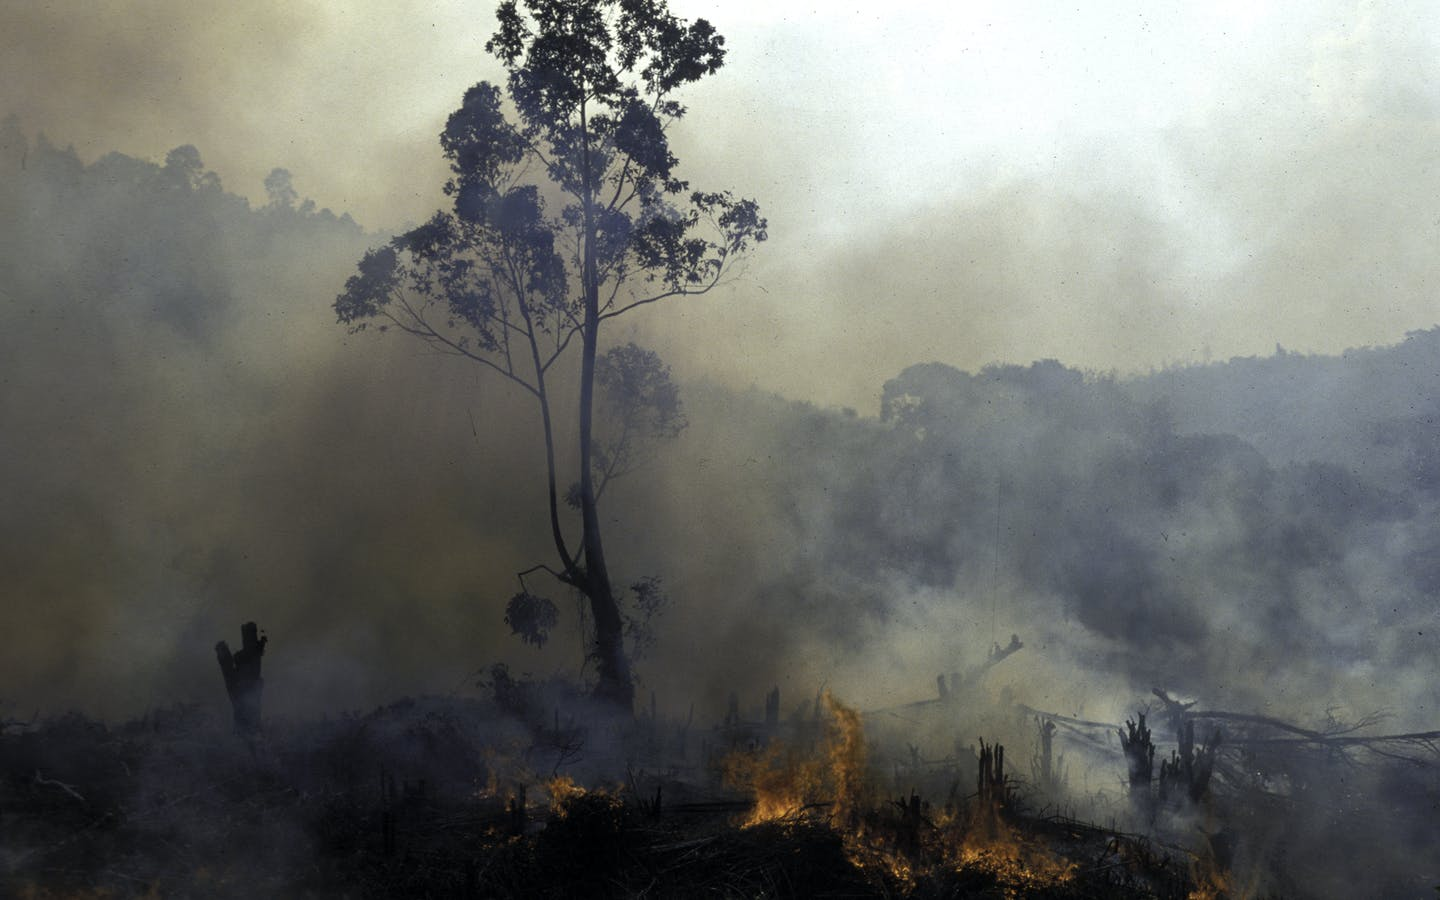 Slash and burning forest for farmland in Madagascar.